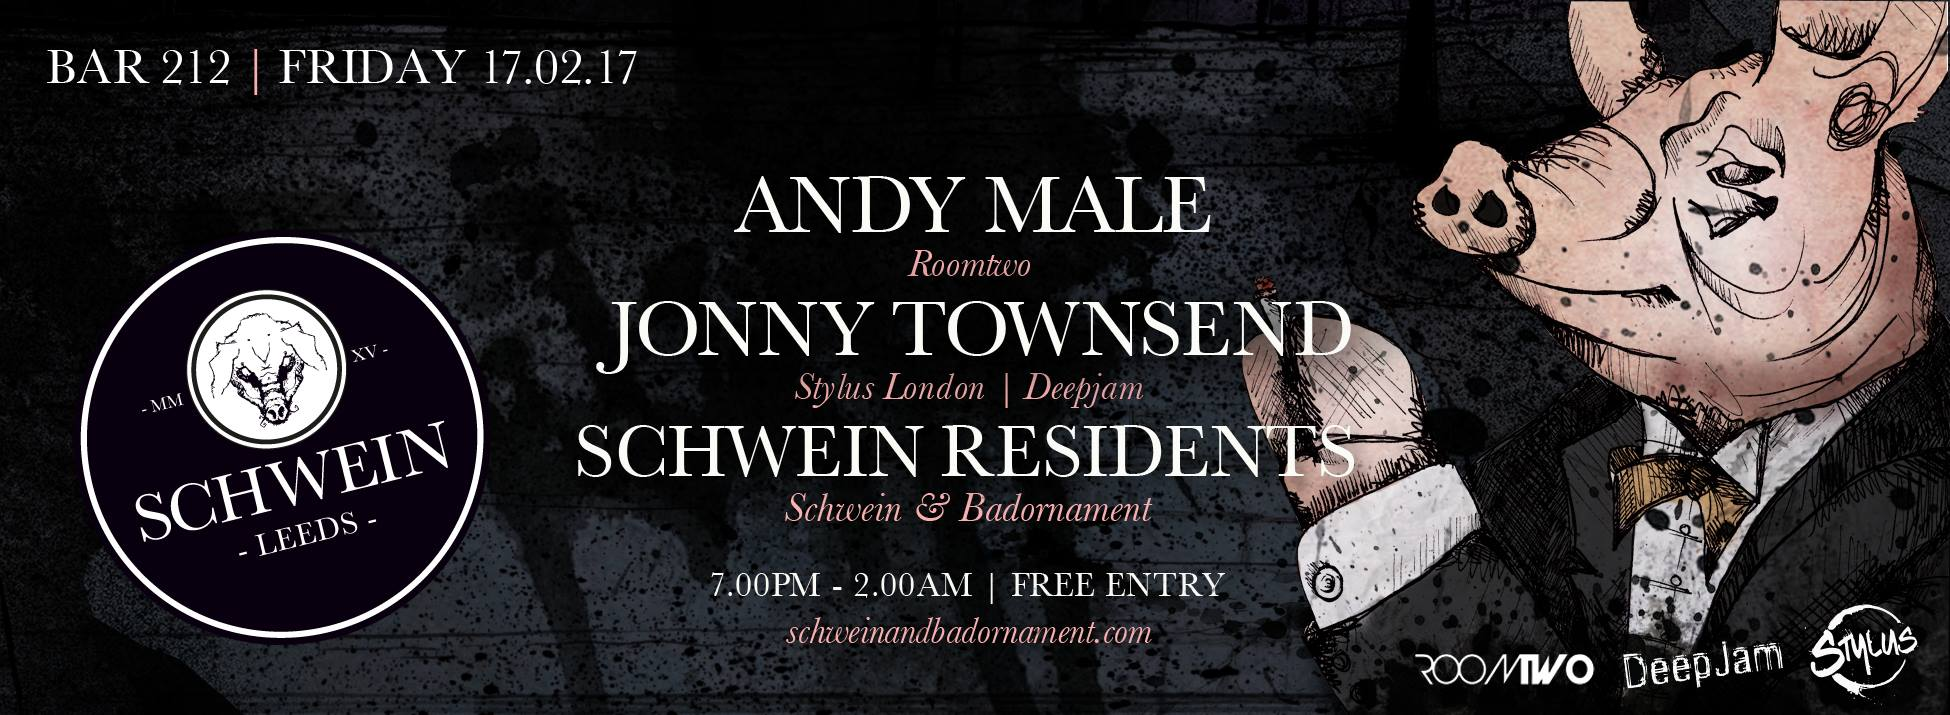 Andy Male & Jonny Townsend at 212